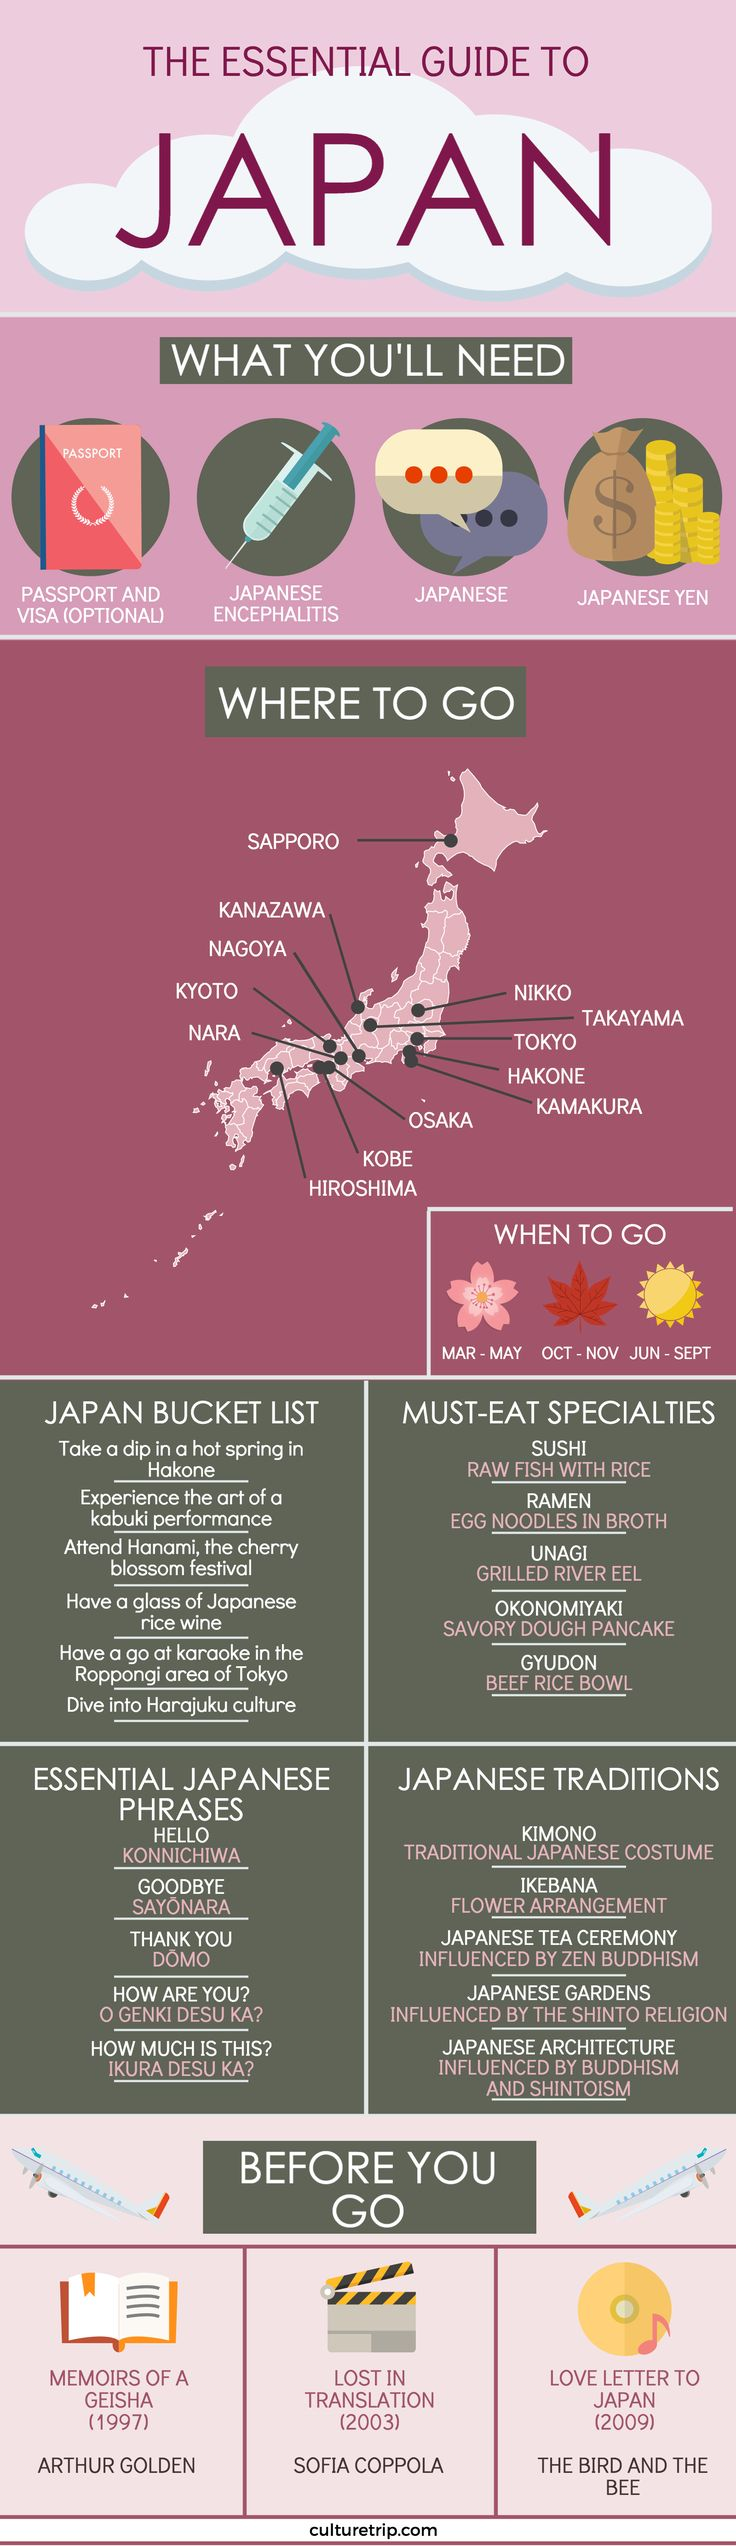 Planning your next big trip abroad? Here's our essential guide to traveling to Japan.